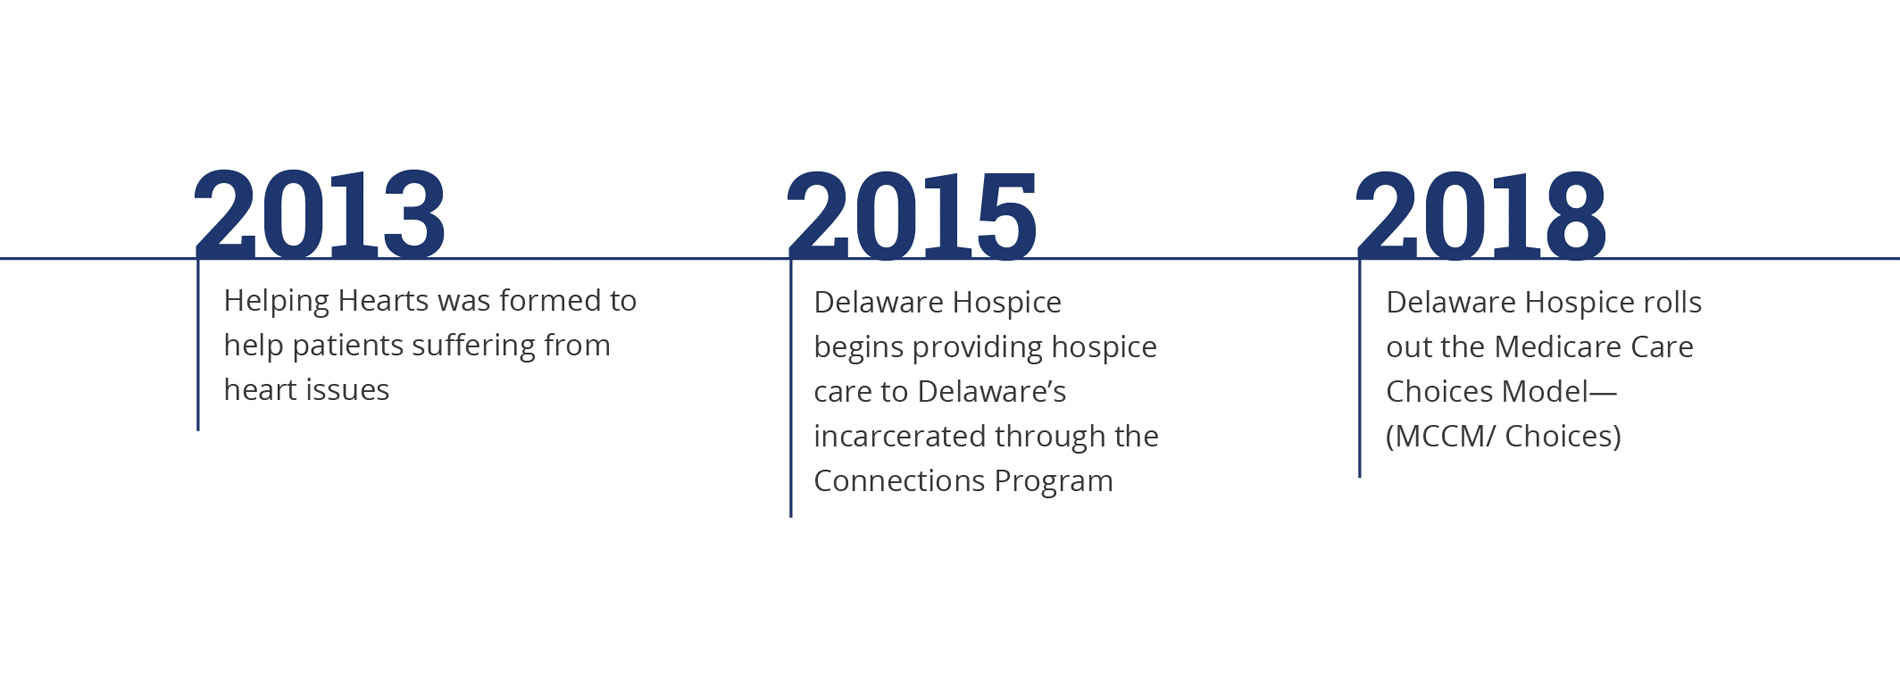 Our Mission & History – Delaware Hospice